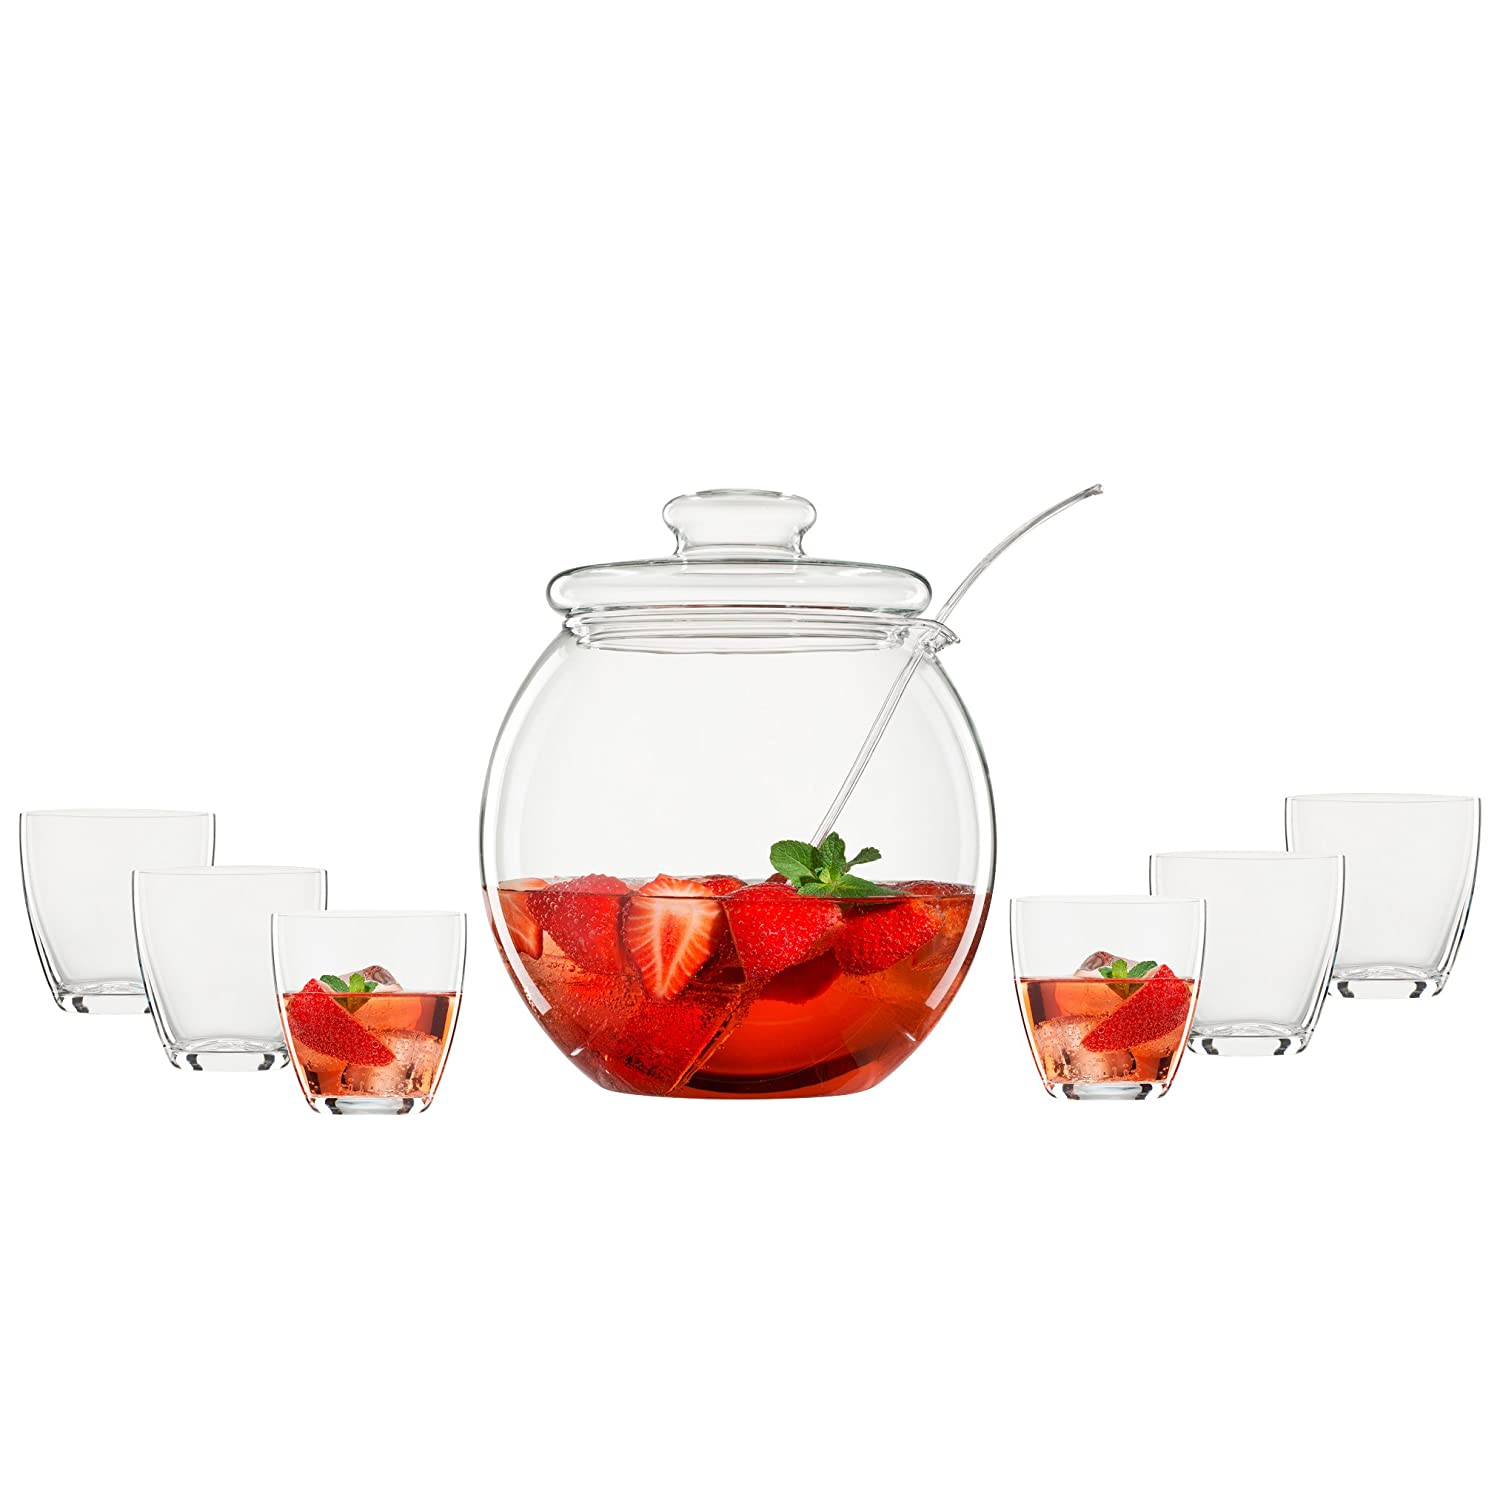 Bohemia Cristal 093006146Set of 9bowls, 1punch bowl approx. 4.5litre capacity with the lid made from heat-resistant borosilicate glass + 6 cups approx. 300 ml of crystal glass Crystalex 093 006 146